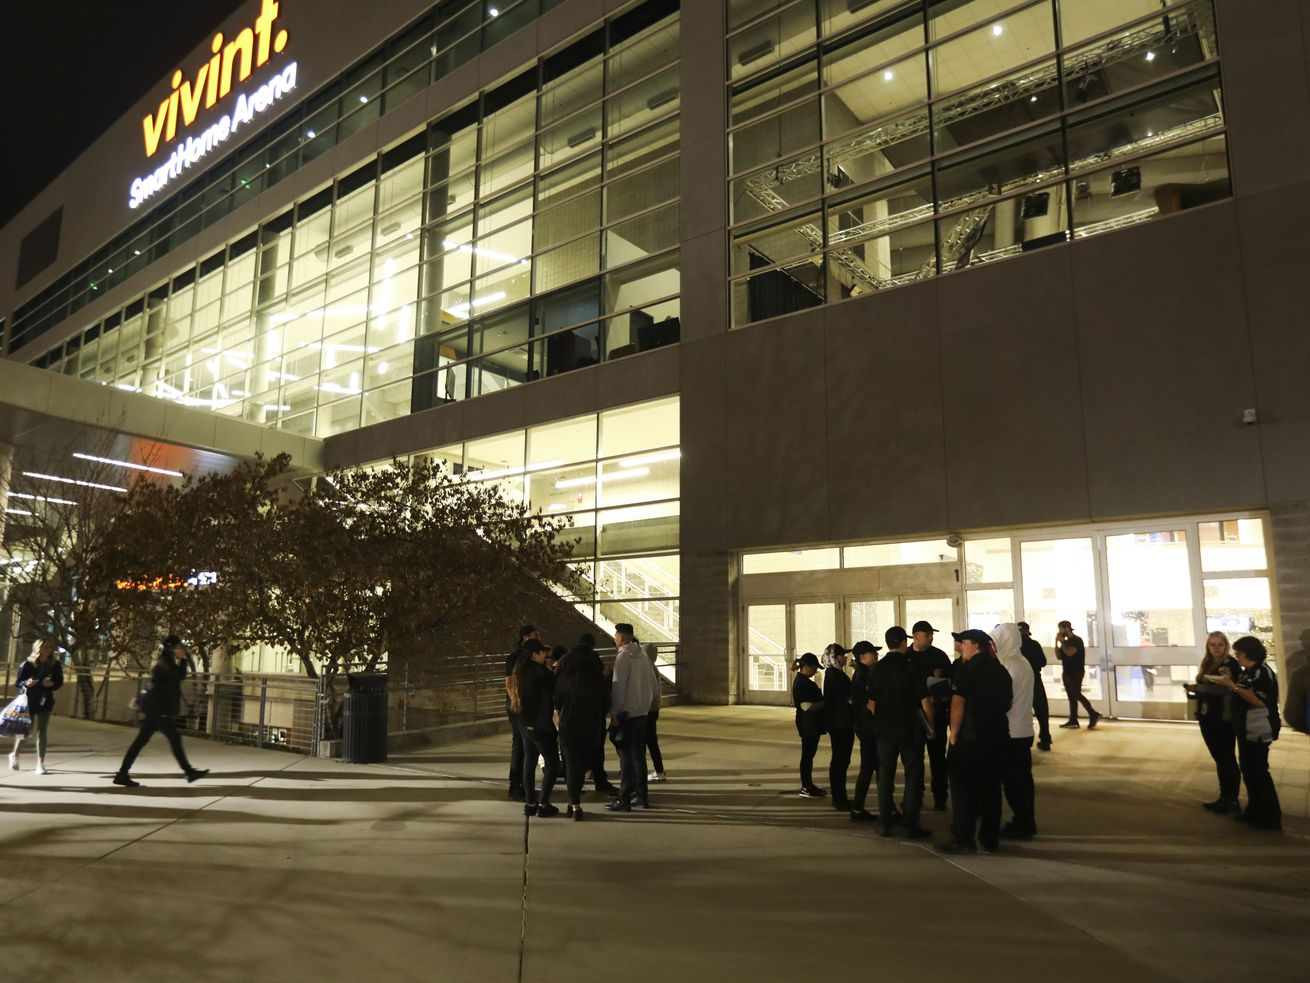 Employees stand outside the Vivint Smart Home Arena after being evacuated in Salt Lake City on Friday, Nov. 22, 2019.